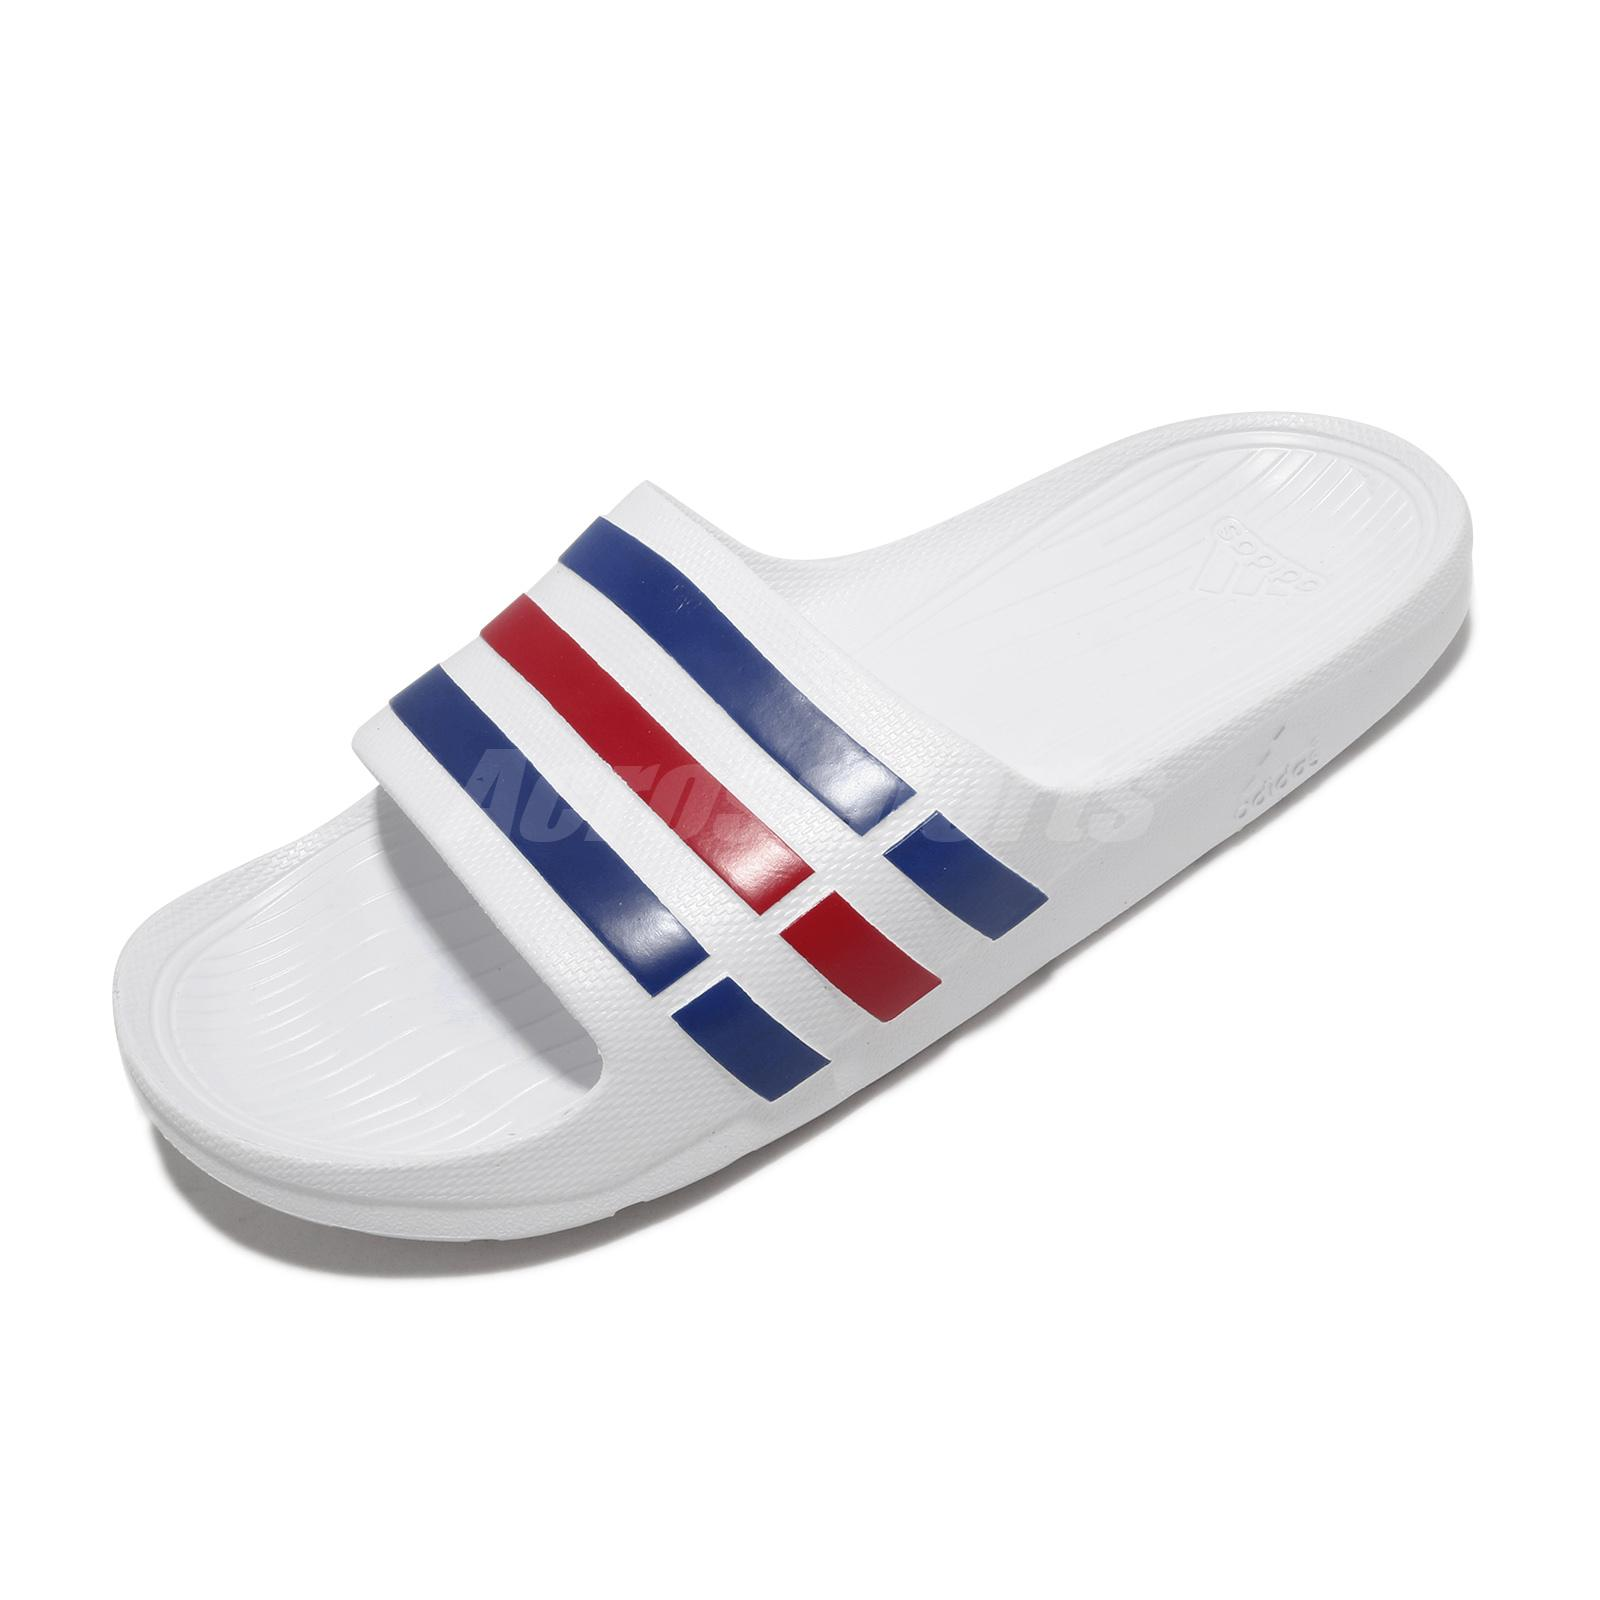 f20e9d2ea035 adidas Duramo Slide White Blue Red Mens Womens Sports Slide Slippers U43664